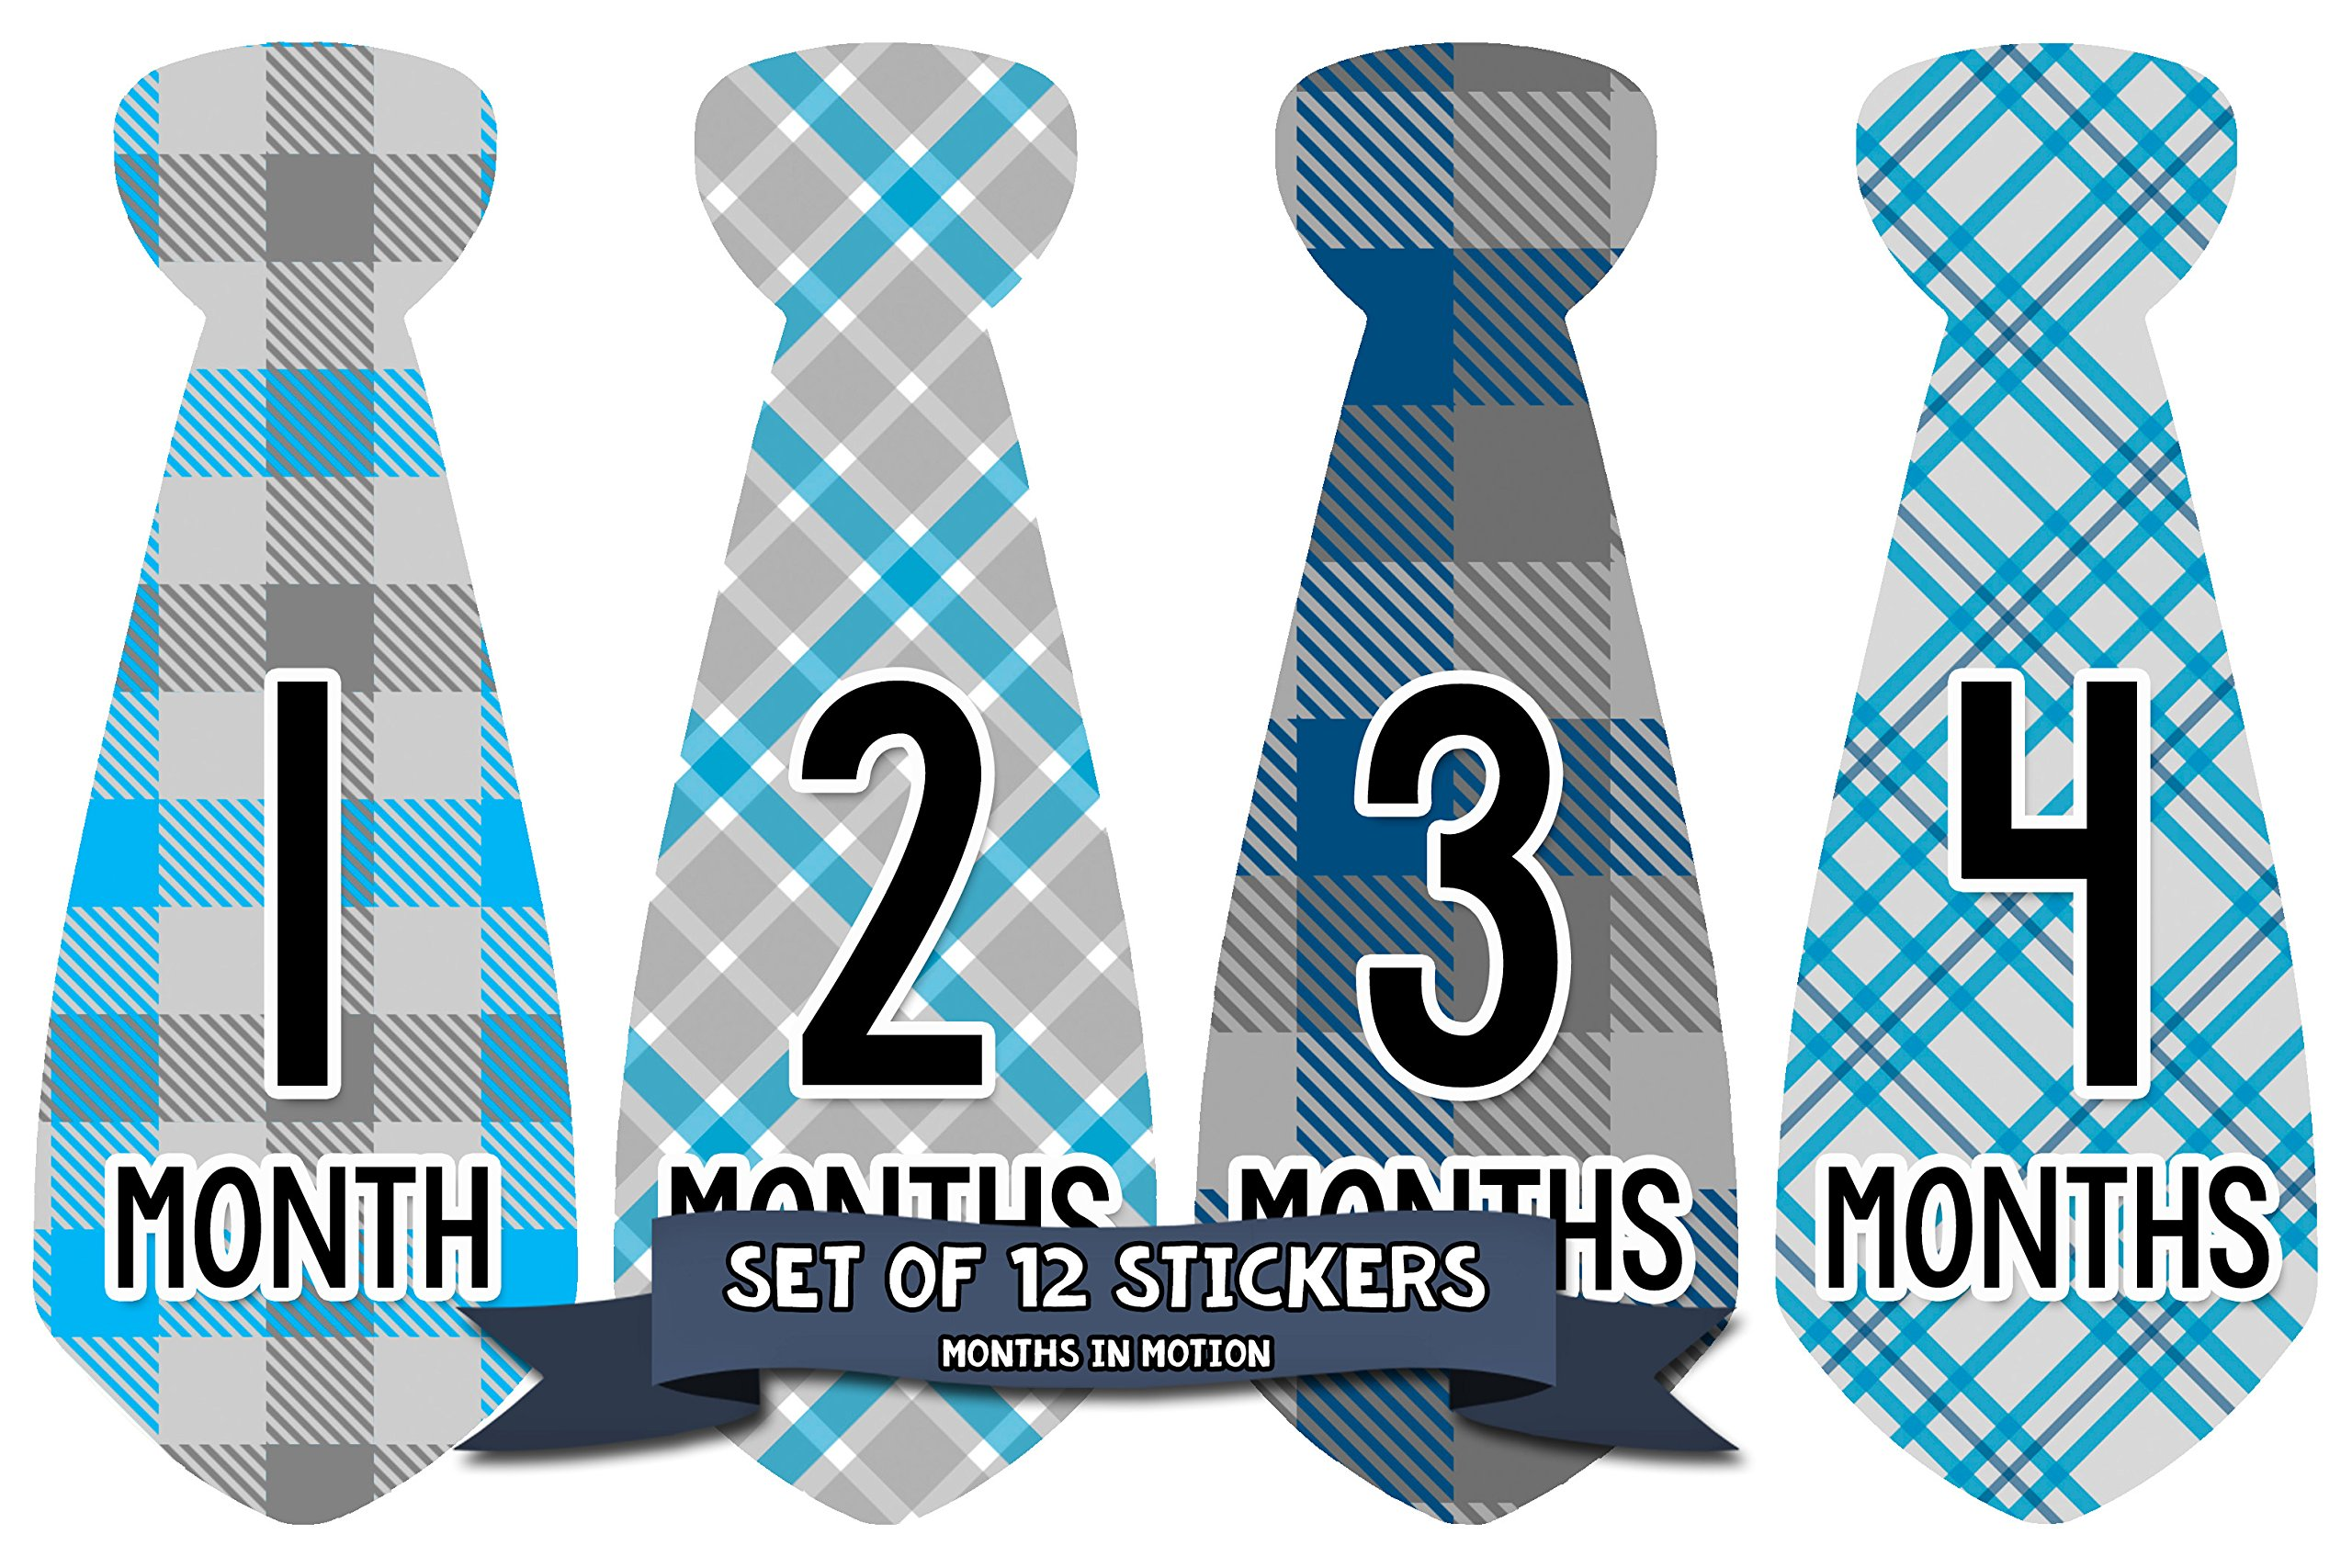 Monthly Baby Stickers Necktie Tie Boy Month Milestone Sticker Months in Motion (776)